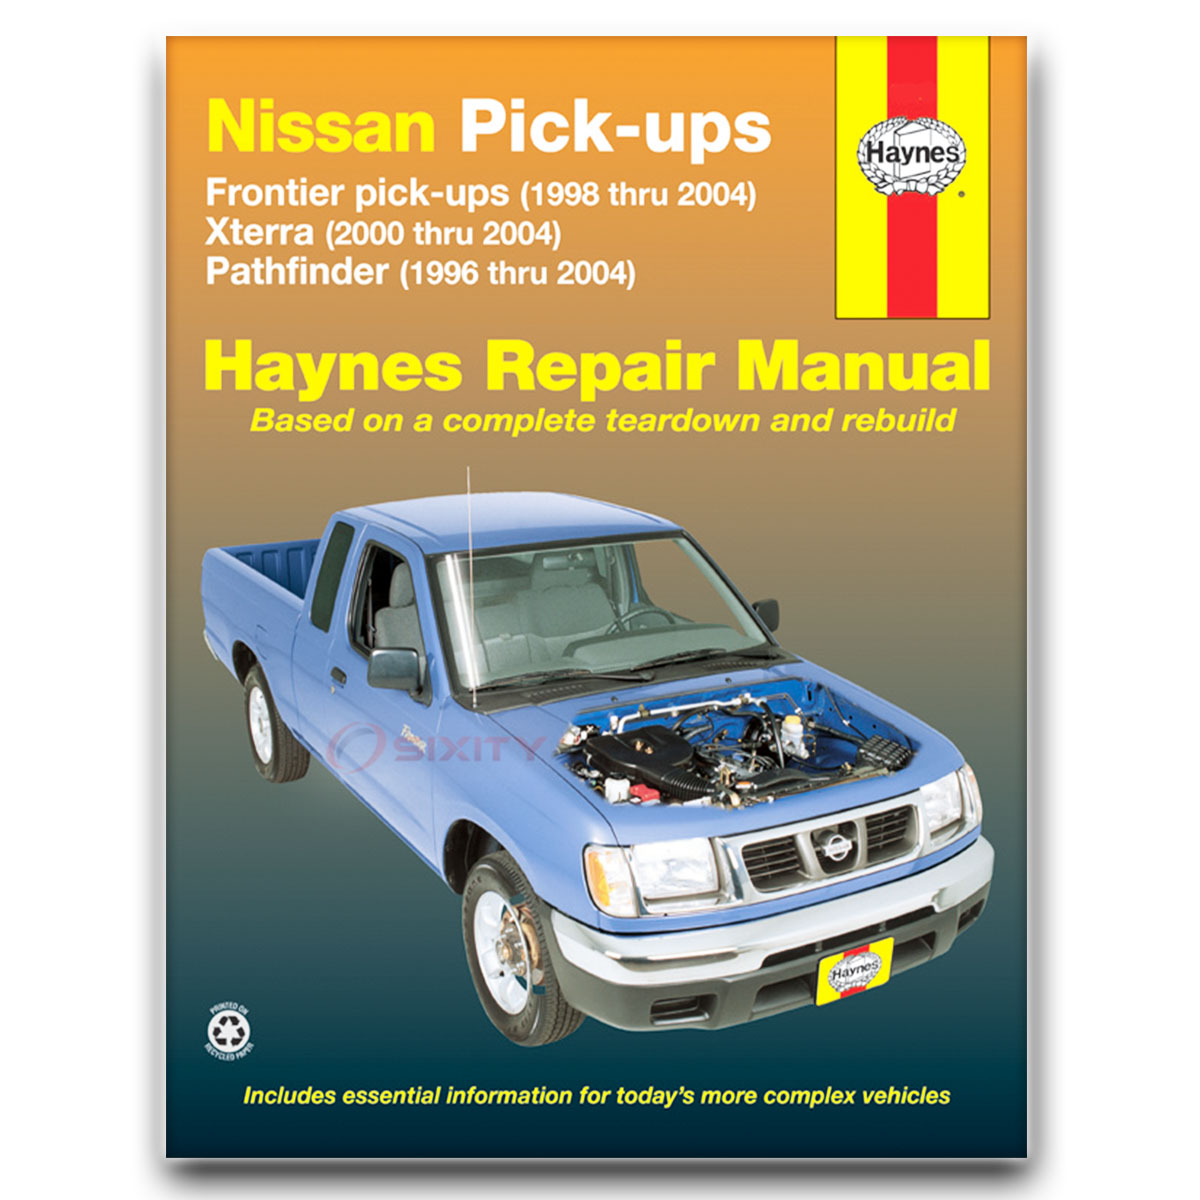 Haynes Repair Manual 72031 for Nissan Frontier Pick-up 98-04 Pathfinder rr